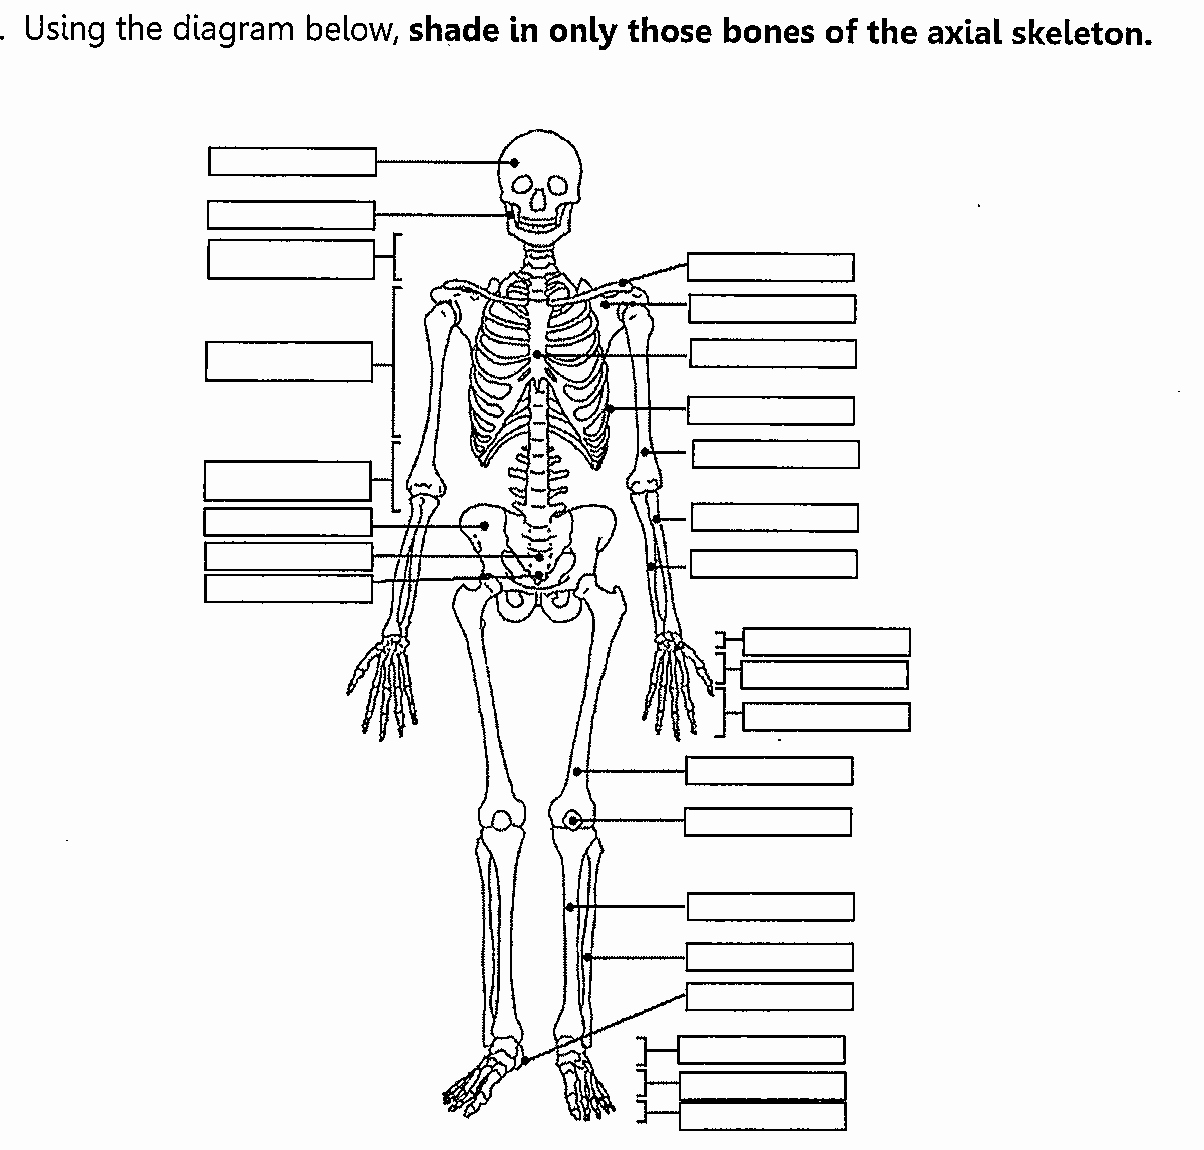 Appendicular Skeleton Worksheet Answers Elegant Worksheets Appendicular Skeleton Worksheet Waytoohuman